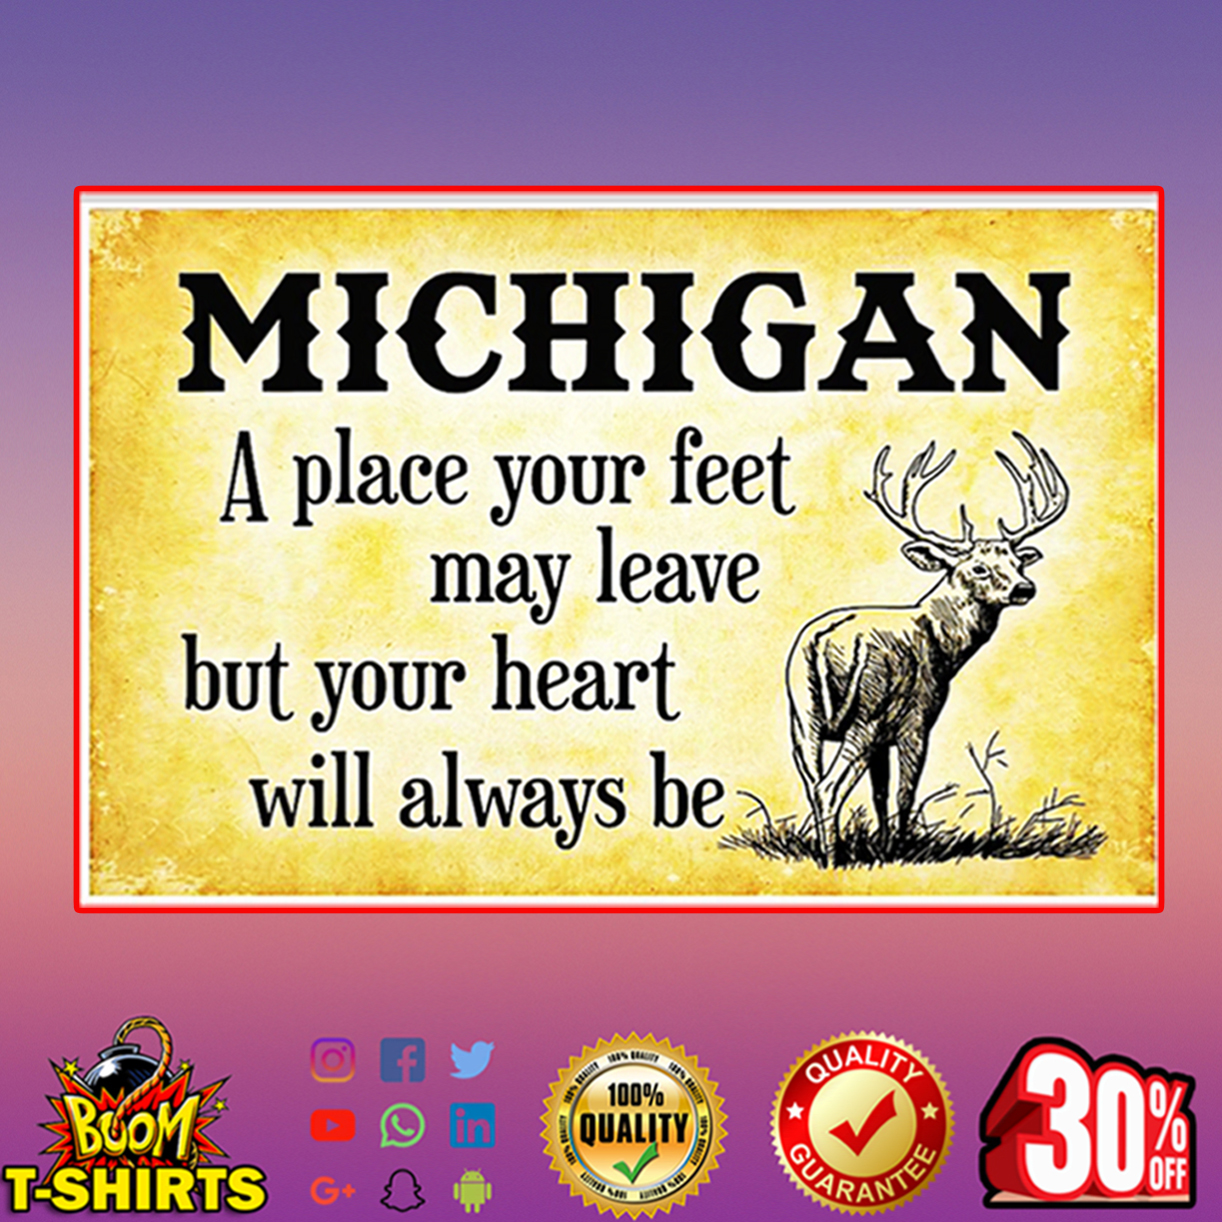 Michigan a place your feet may leave but your heart will always be poster